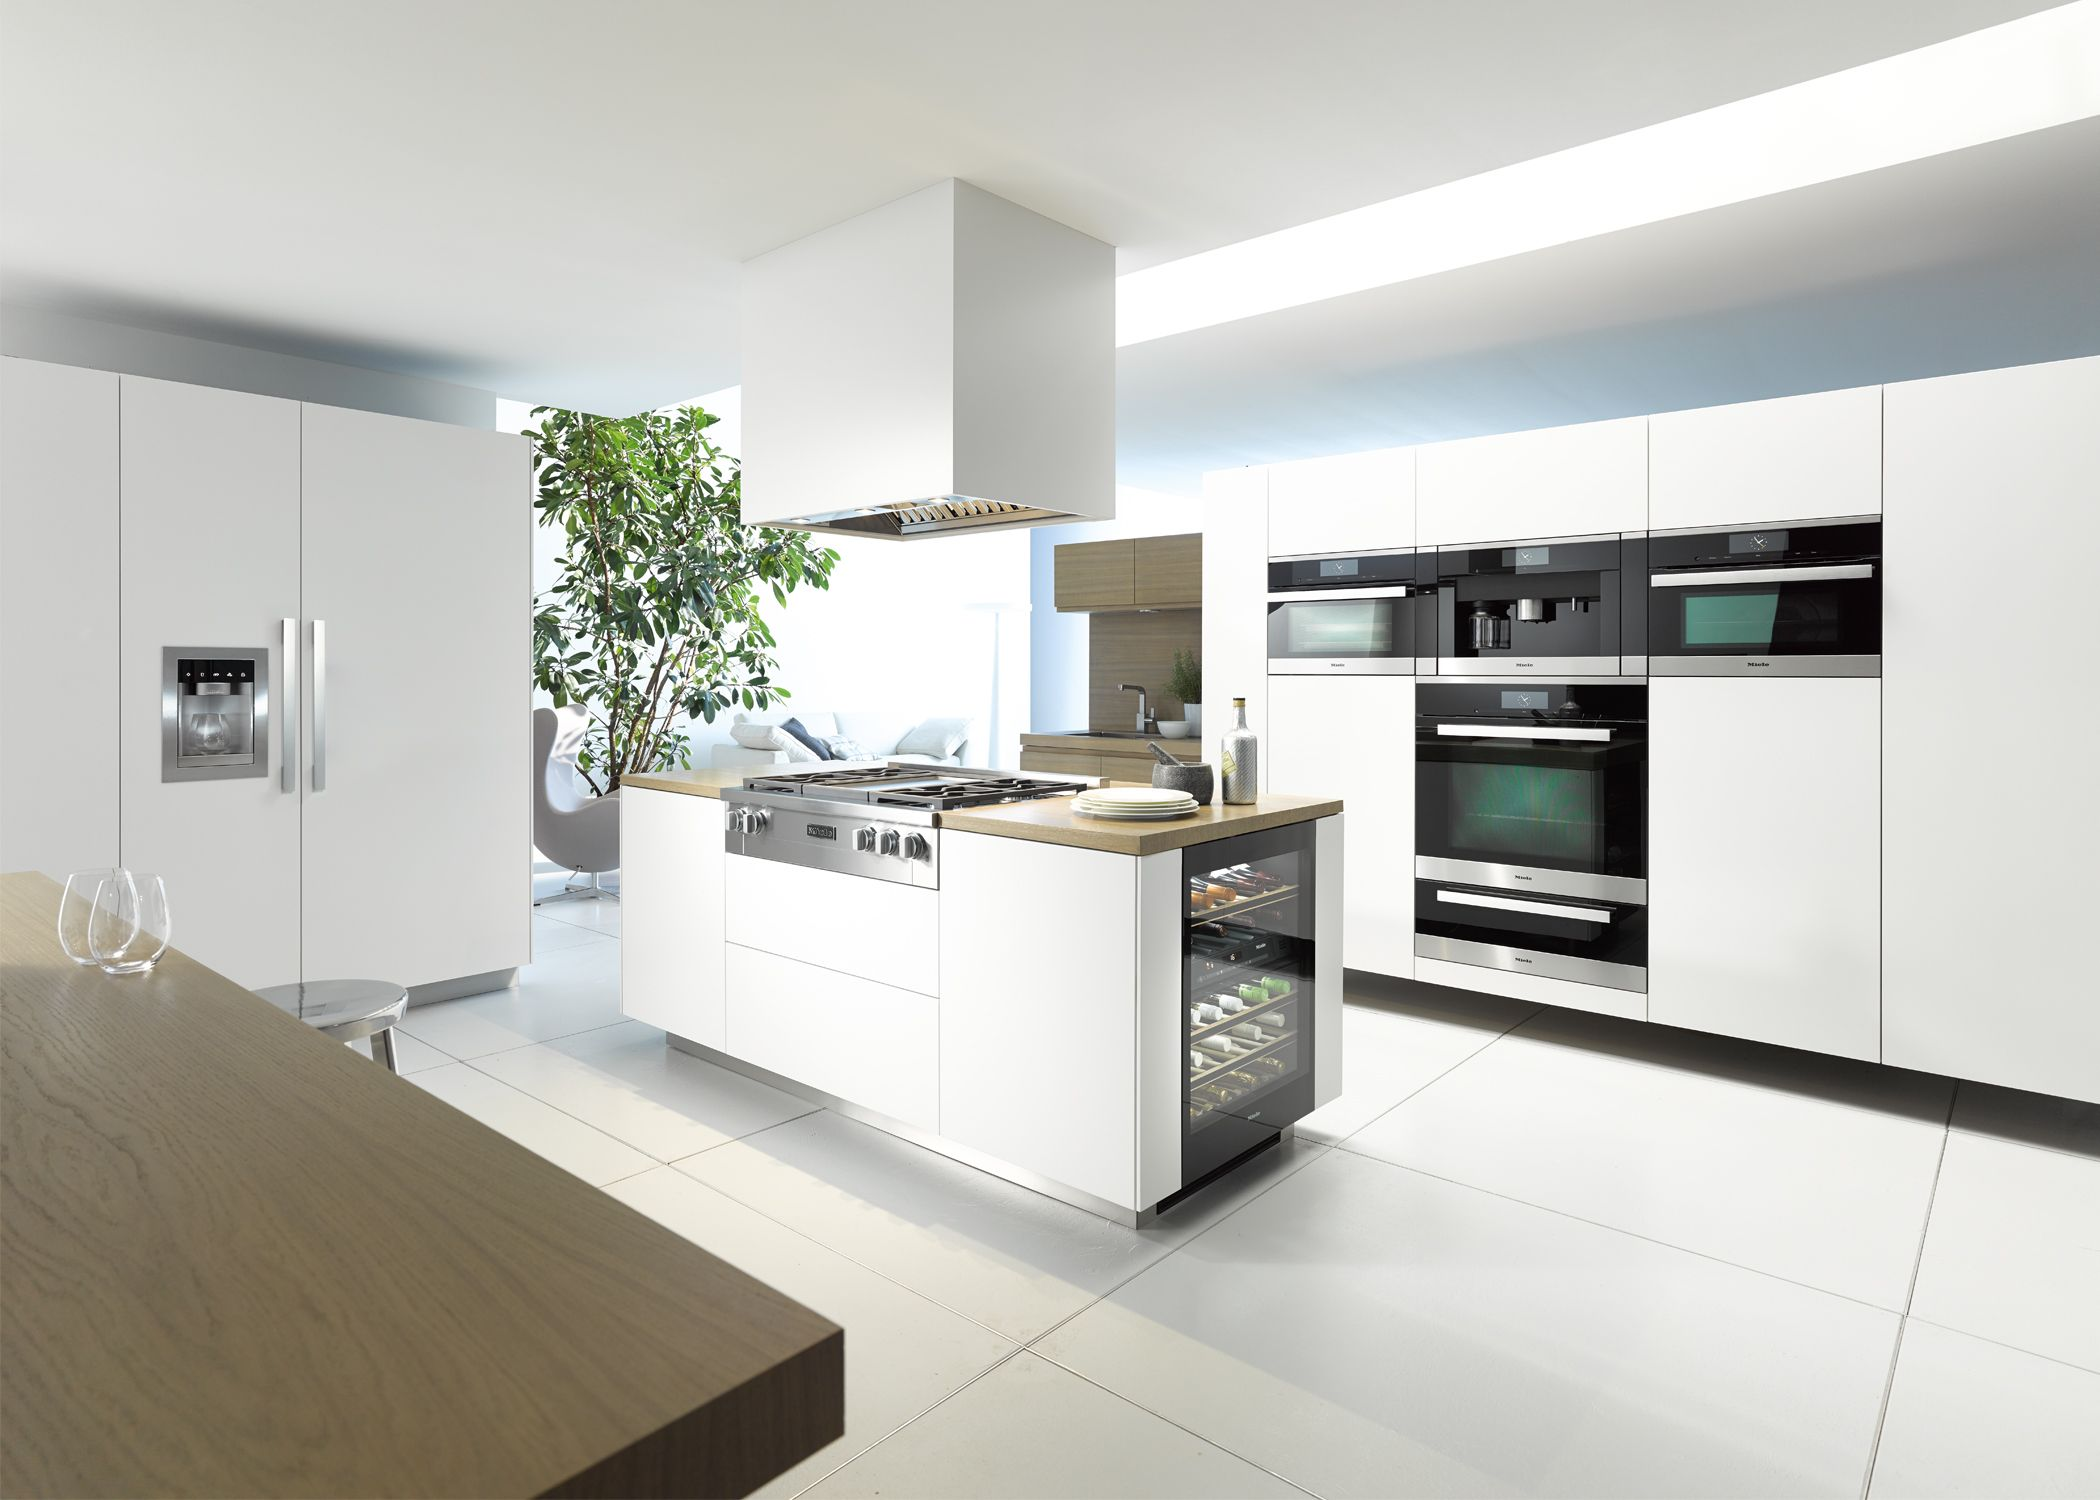 Miele Kitchen Design Miele Rangetop Cooktop With Built In Griddle Miele Wall